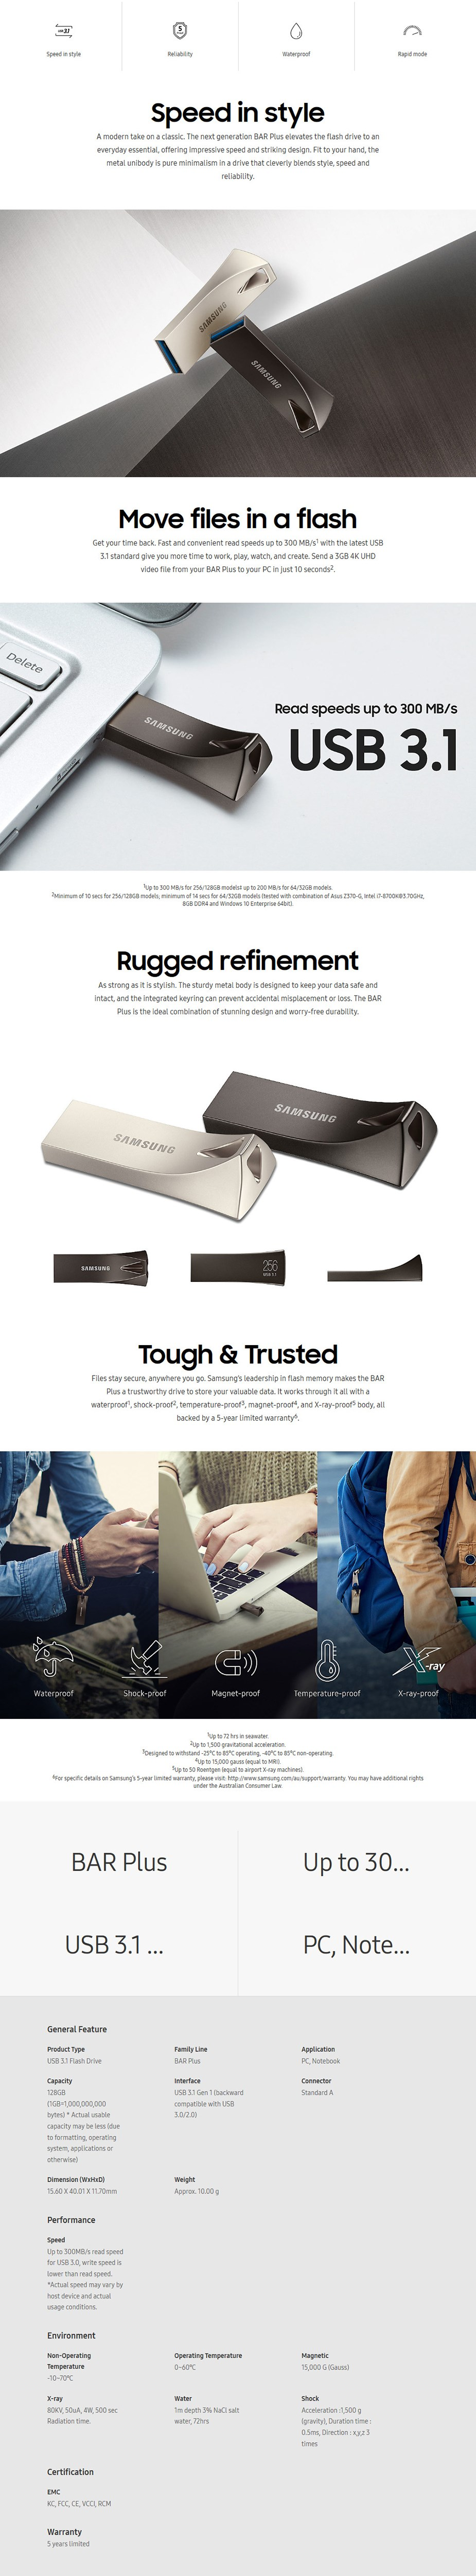 Samsung MUF-128BE4/APC 128GB USB 3.0 BAR Plus Flash Drive - Titan Gray - Desktop Overview 1